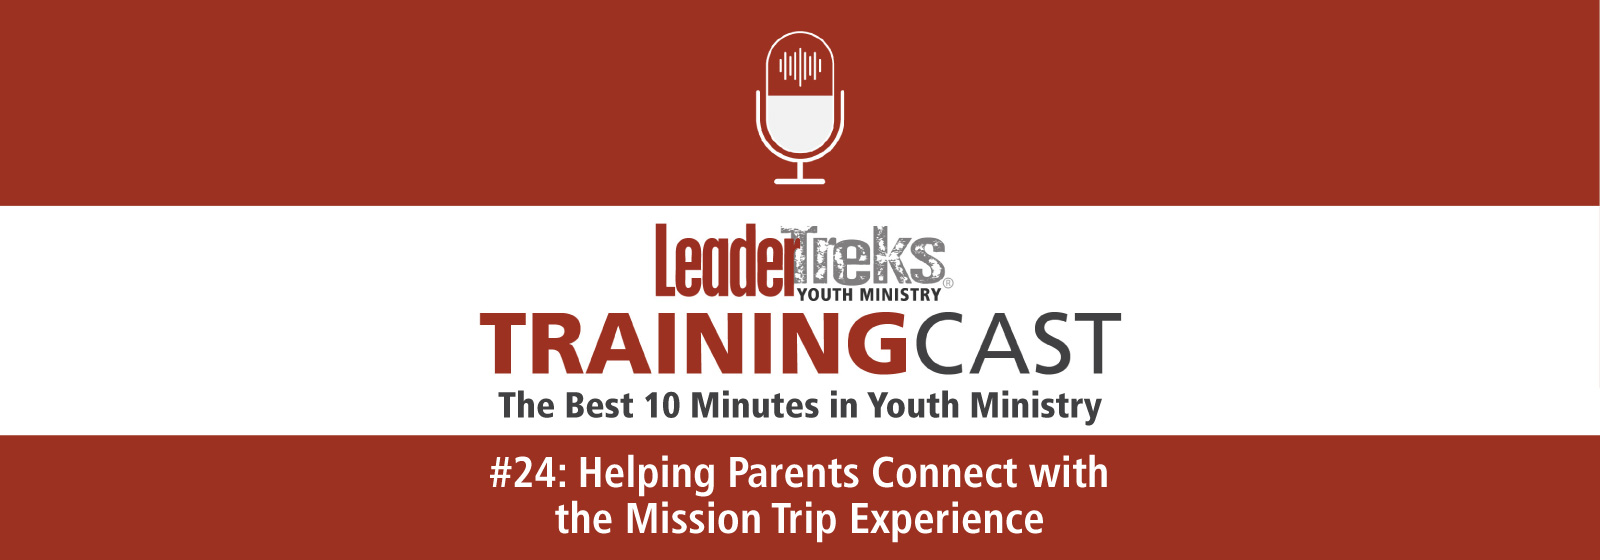 helping parents connect with the mission trip experience youth ministry trainingcast